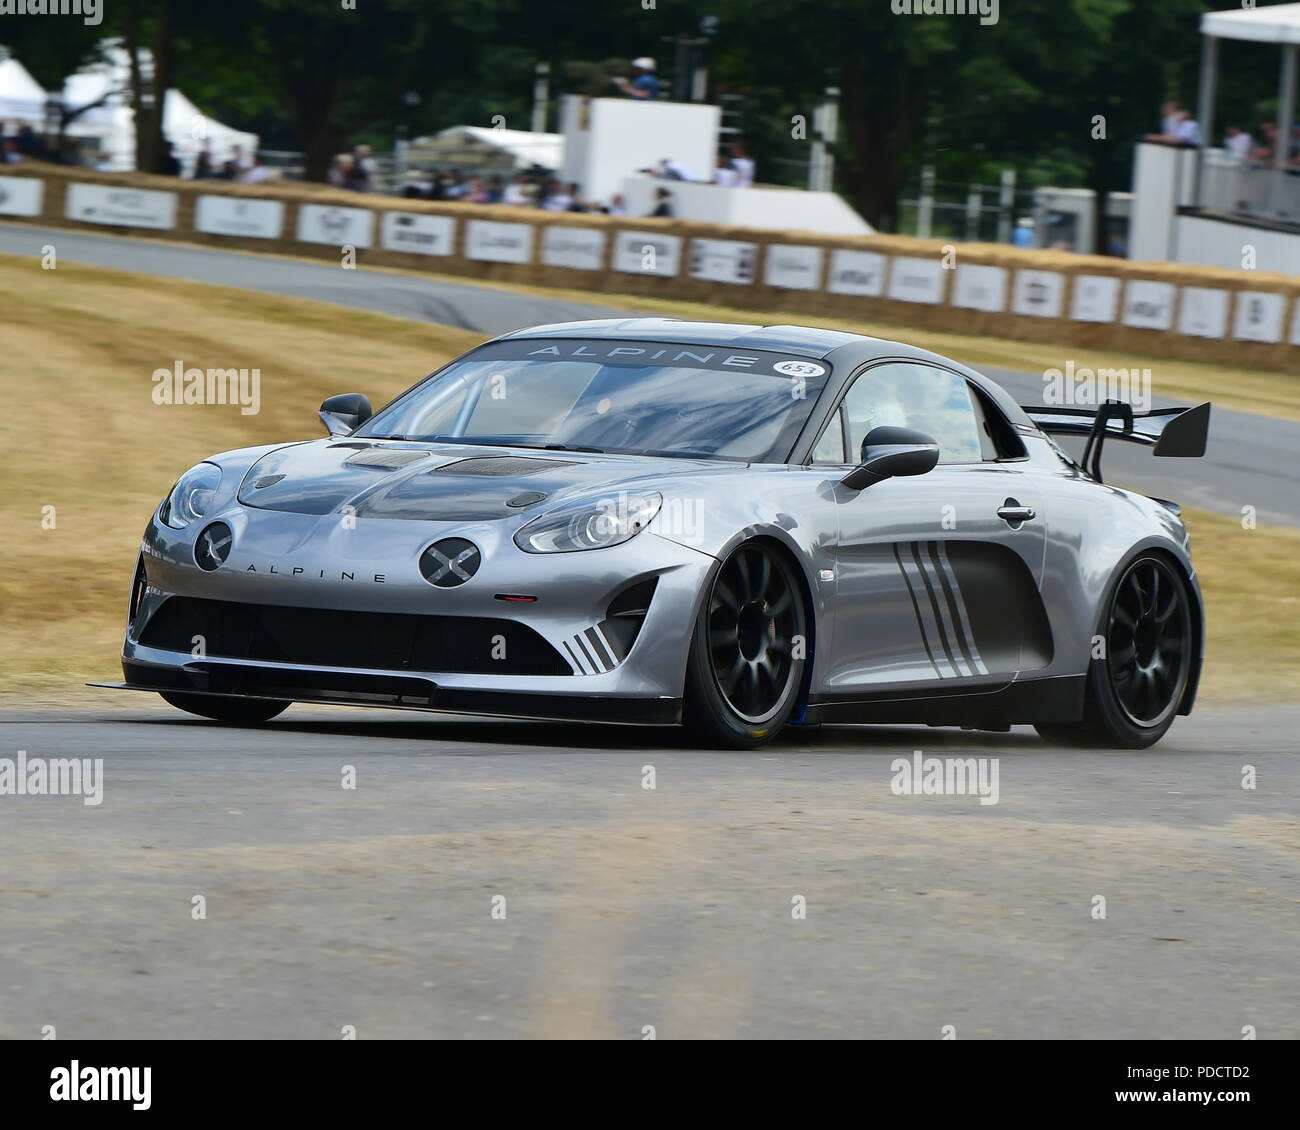 alpine a110 legende photos alpine a110 legende images alamy. Black Bedroom Furniture Sets. Home Design Ideas